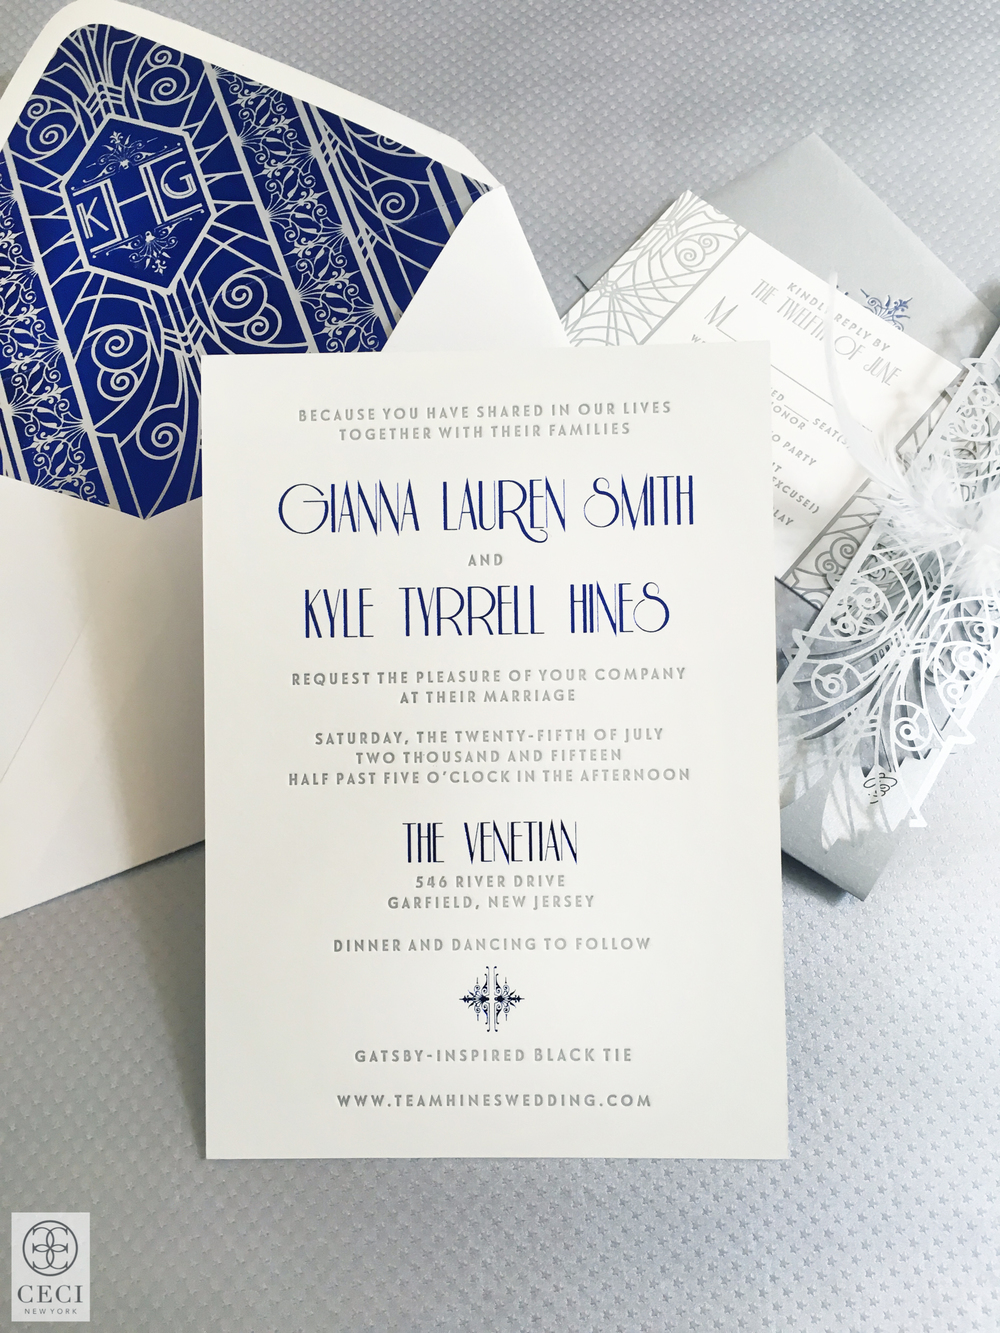 Ceci_New_York_New_Jersey_Invitations_Wedding_New_York_Elegance_Silver_Blue_Letterpress_Deco_Classic_Foil_Stamping_Custom_Couture_Personalized-50.jpg